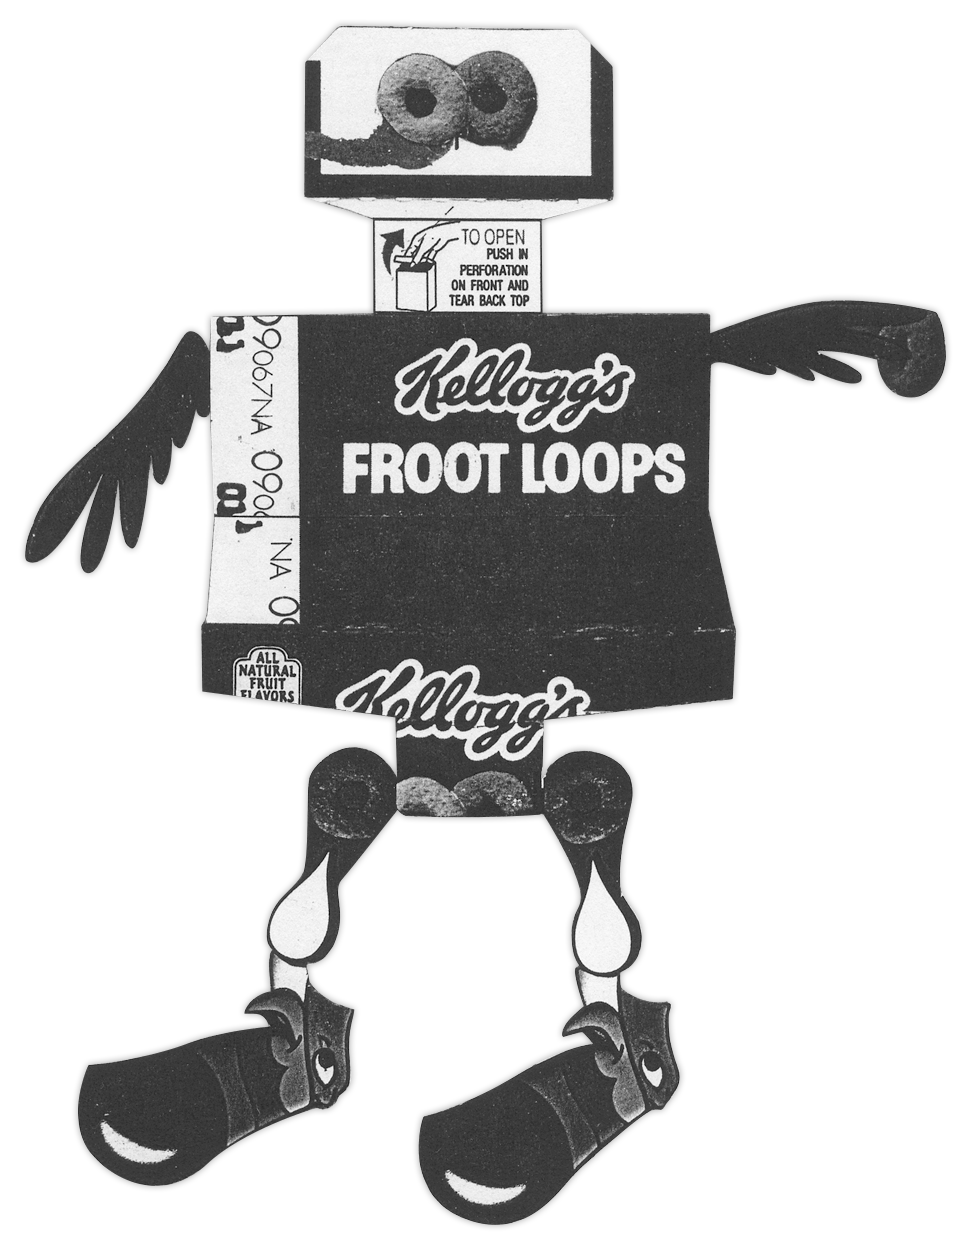 Kellogg's Froot Loops (single) BoxBot